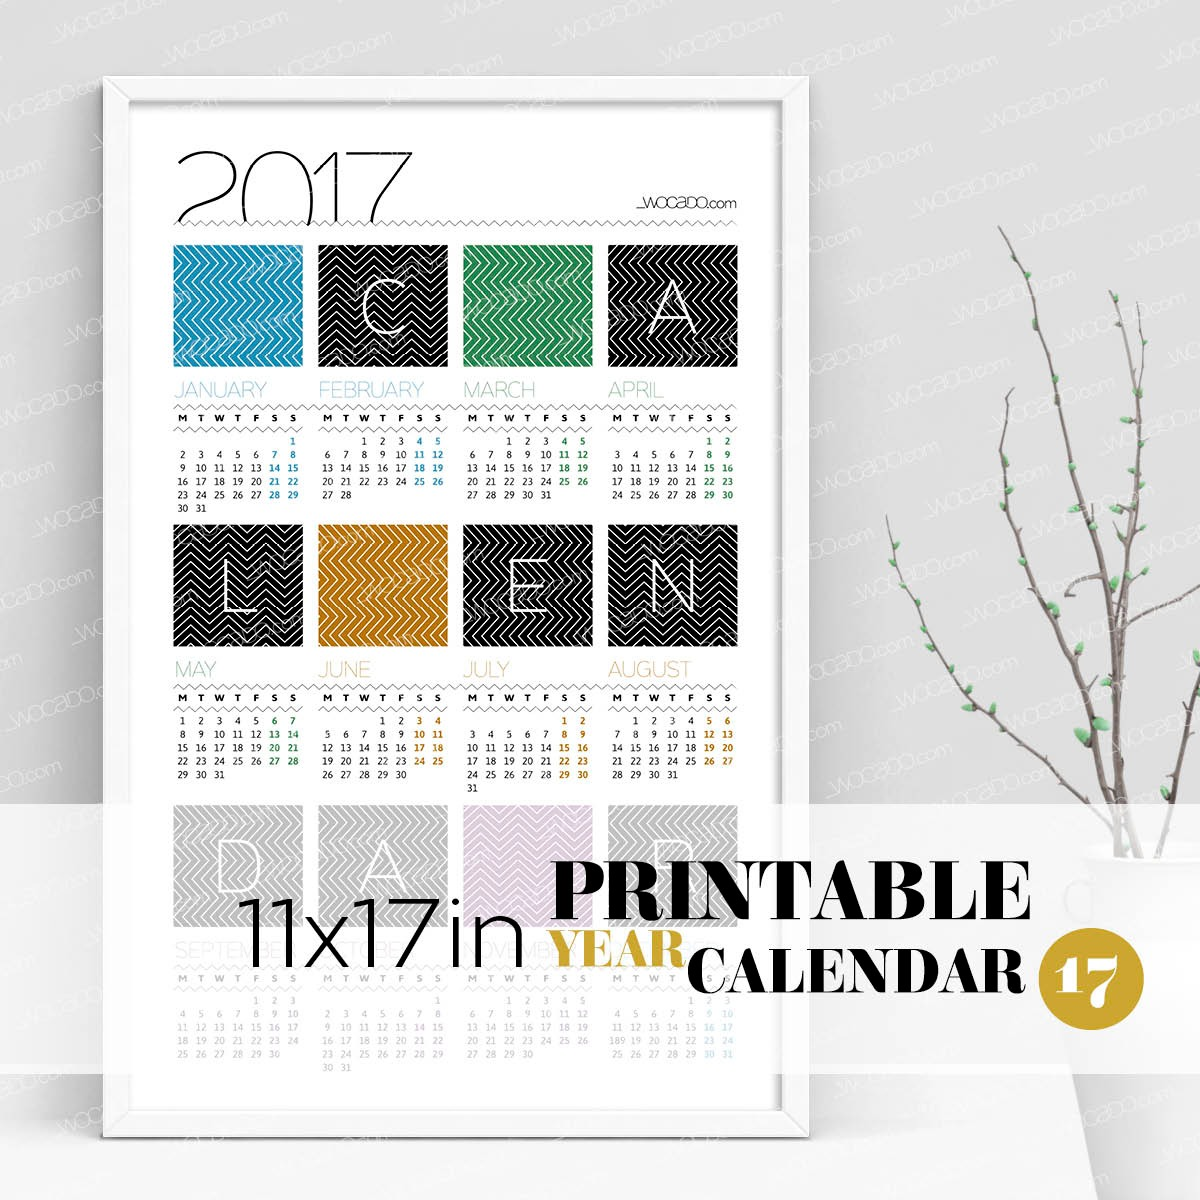 Time Zigzag – Full Year Printable Calendar 2017 - 11x17 Poster, Multicolor, Designer Style